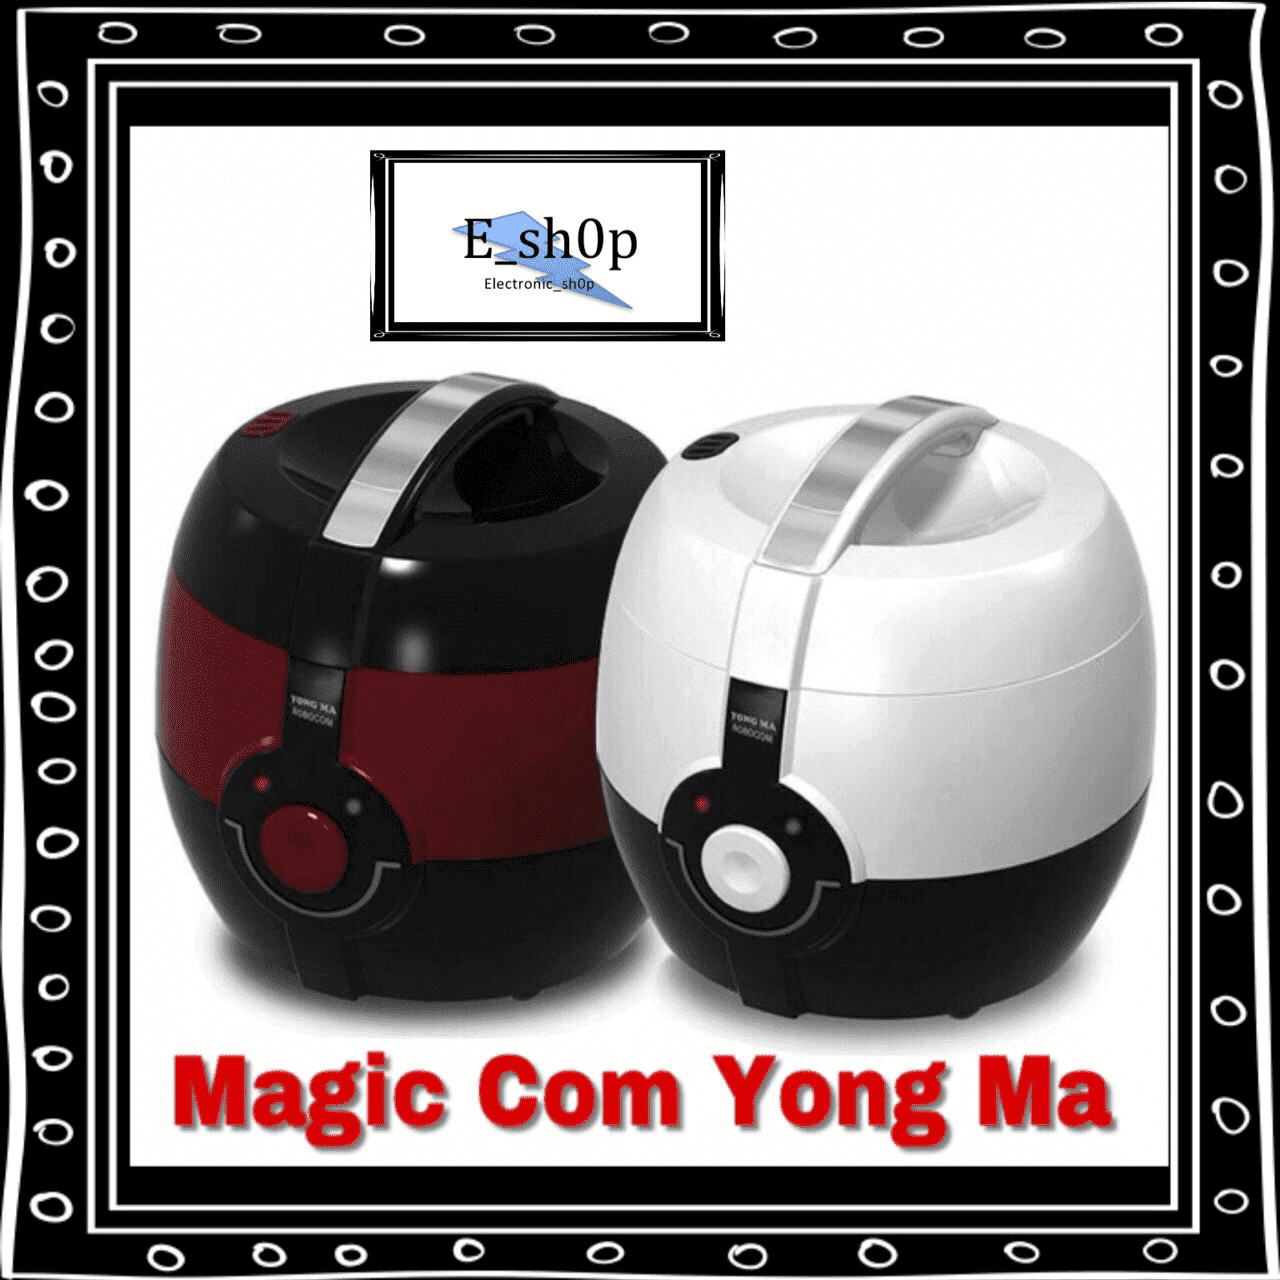 Magic Com Yong Ma MC-1300 / YMC-302 Kap 1 L